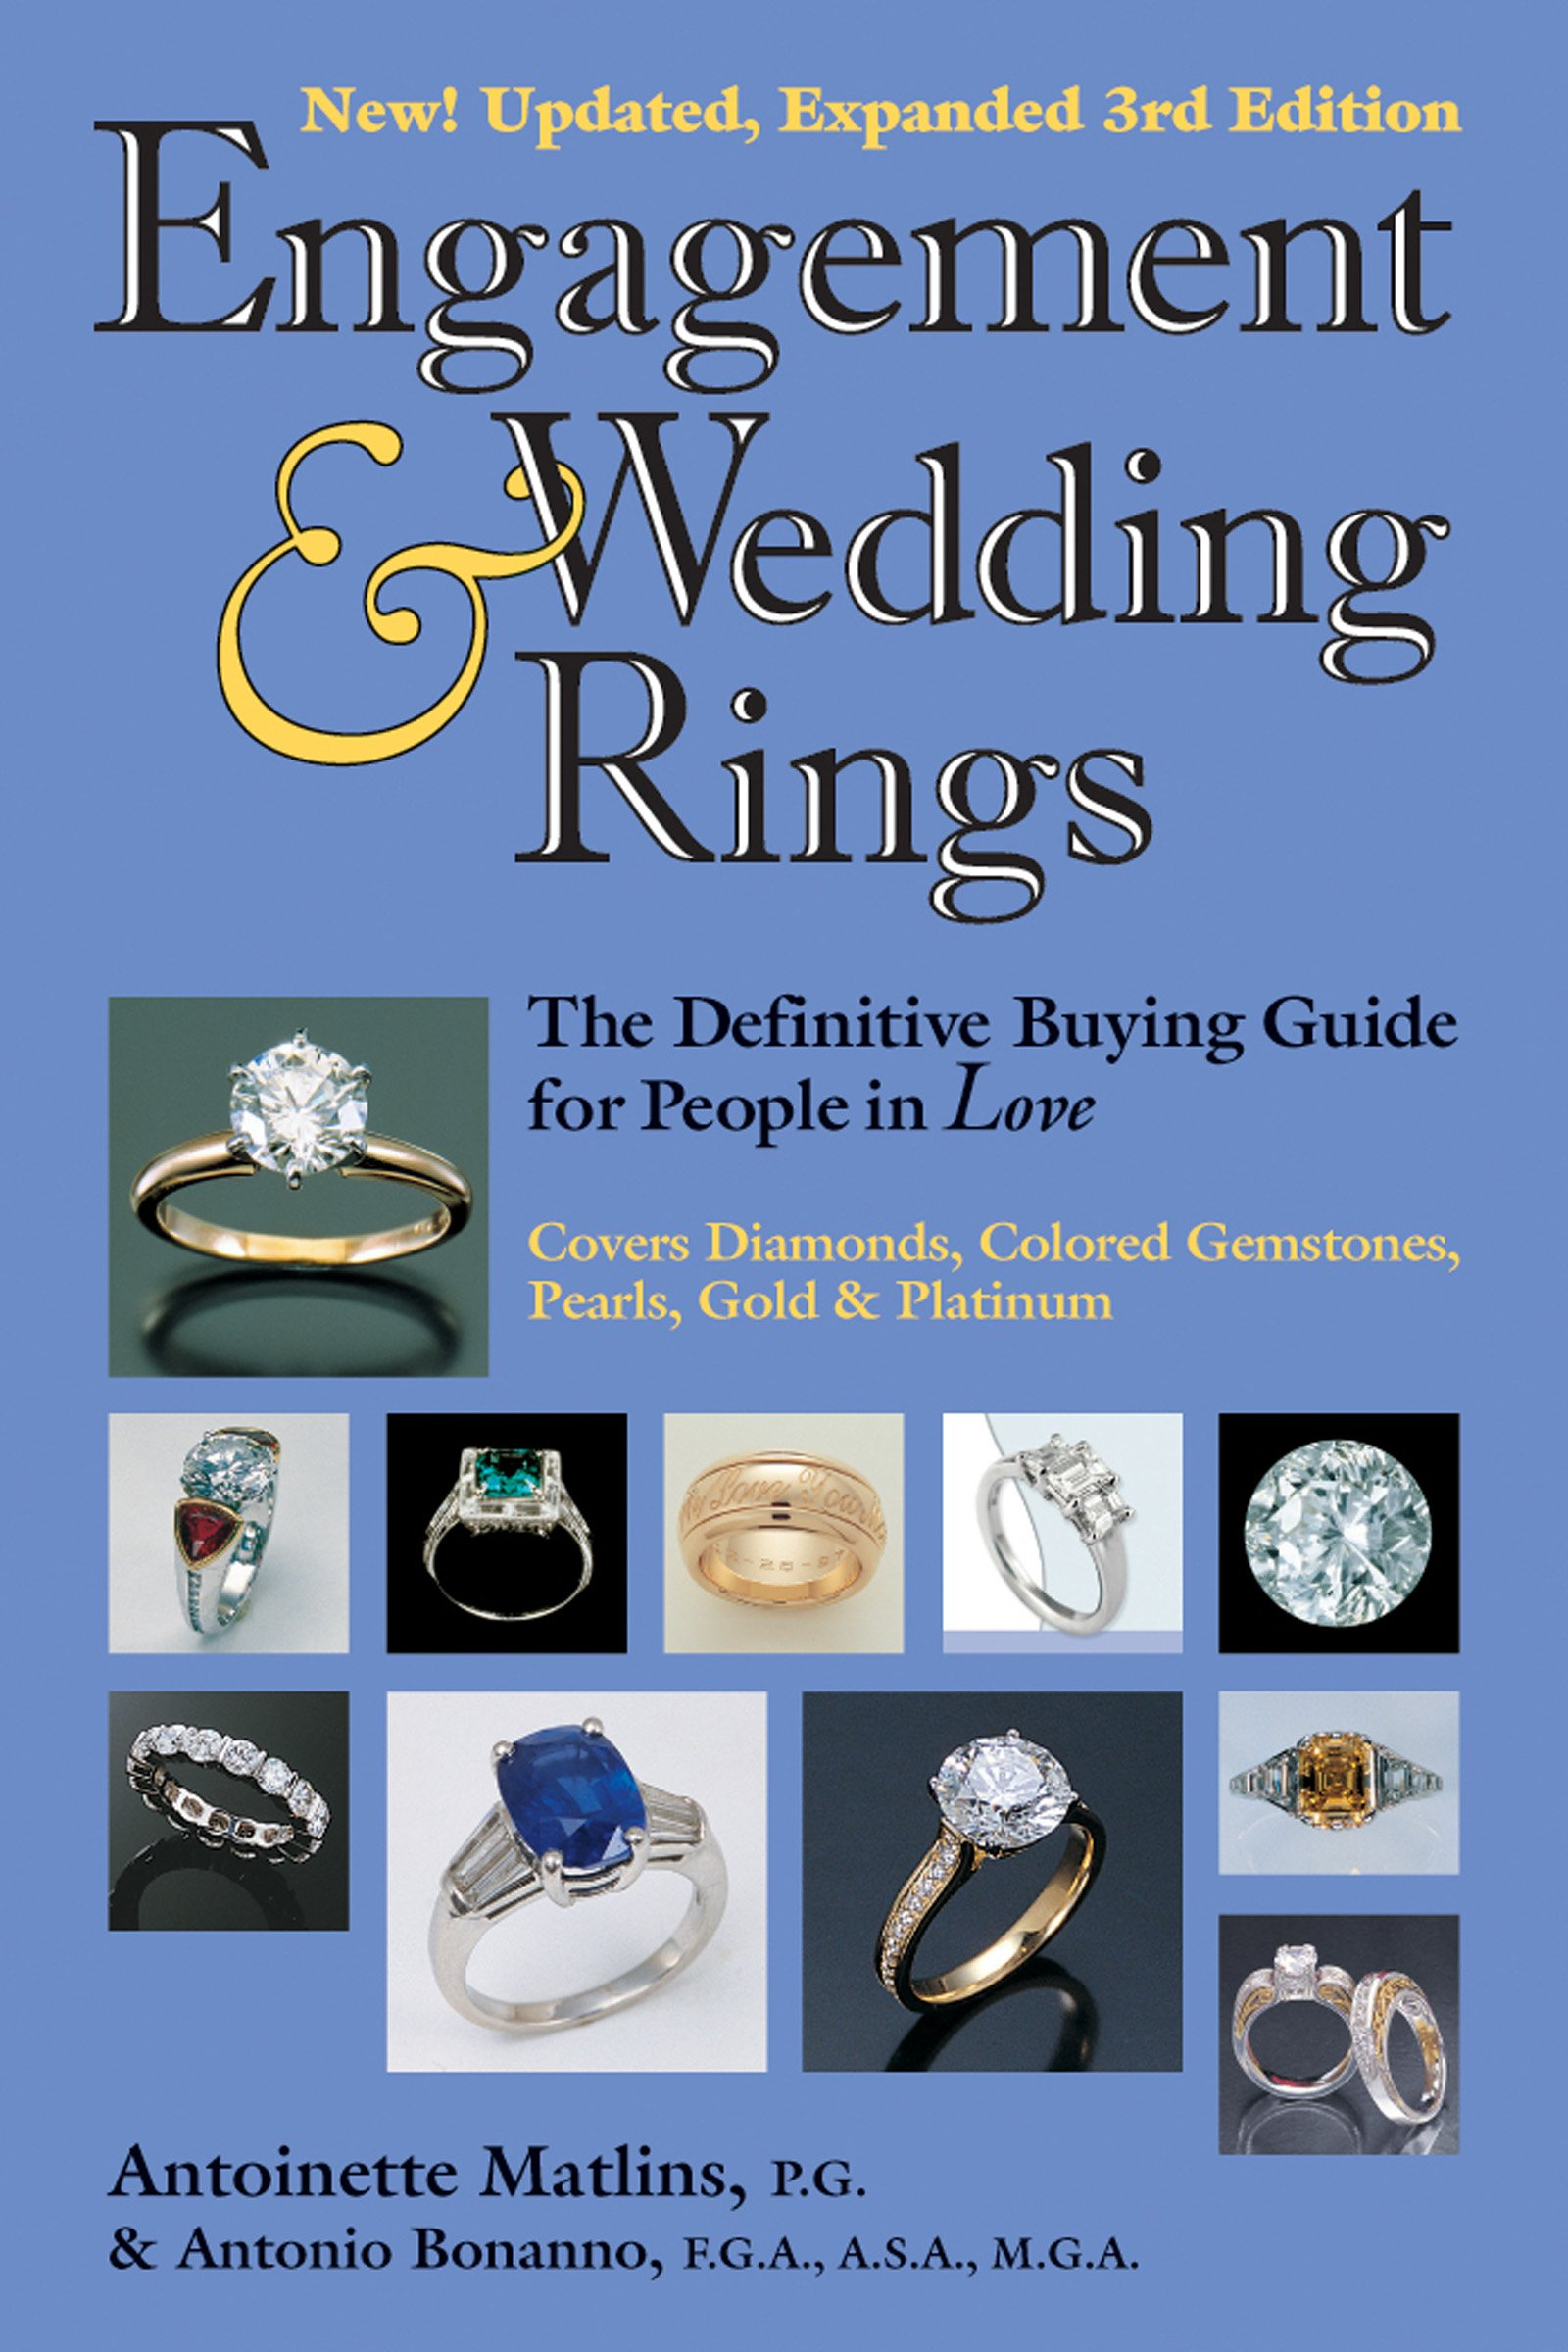 Engagement & Wedding Rings 3rd Edition The Definitive Buying